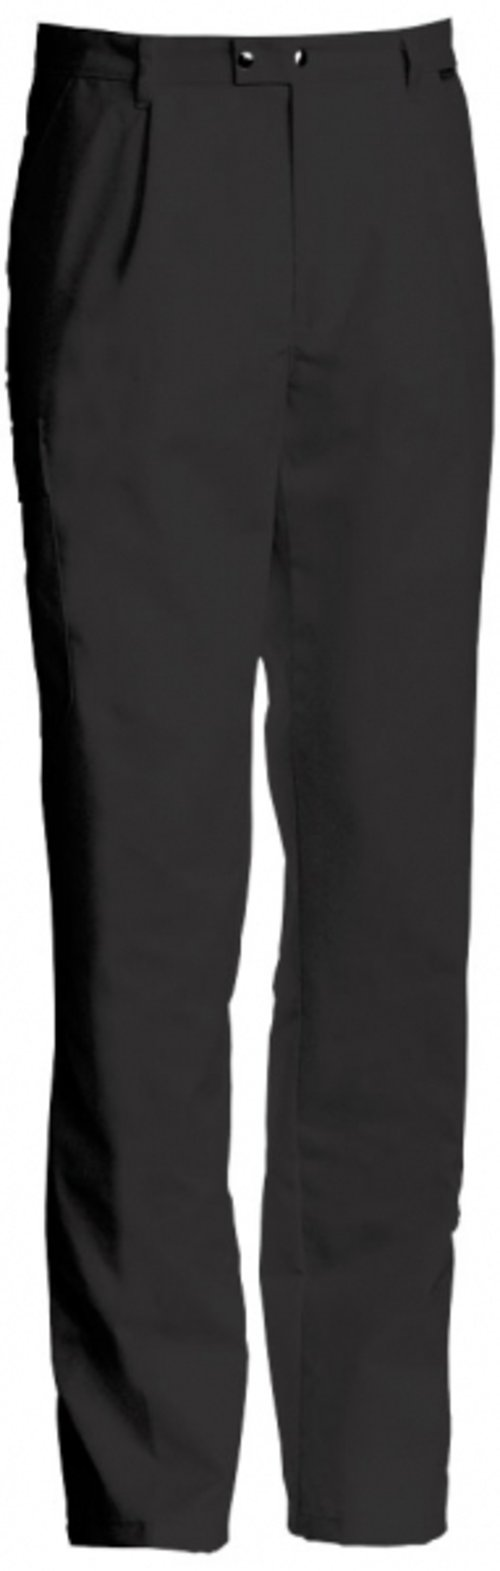 Nybo Workwear Club Classic unisex trousers, Black